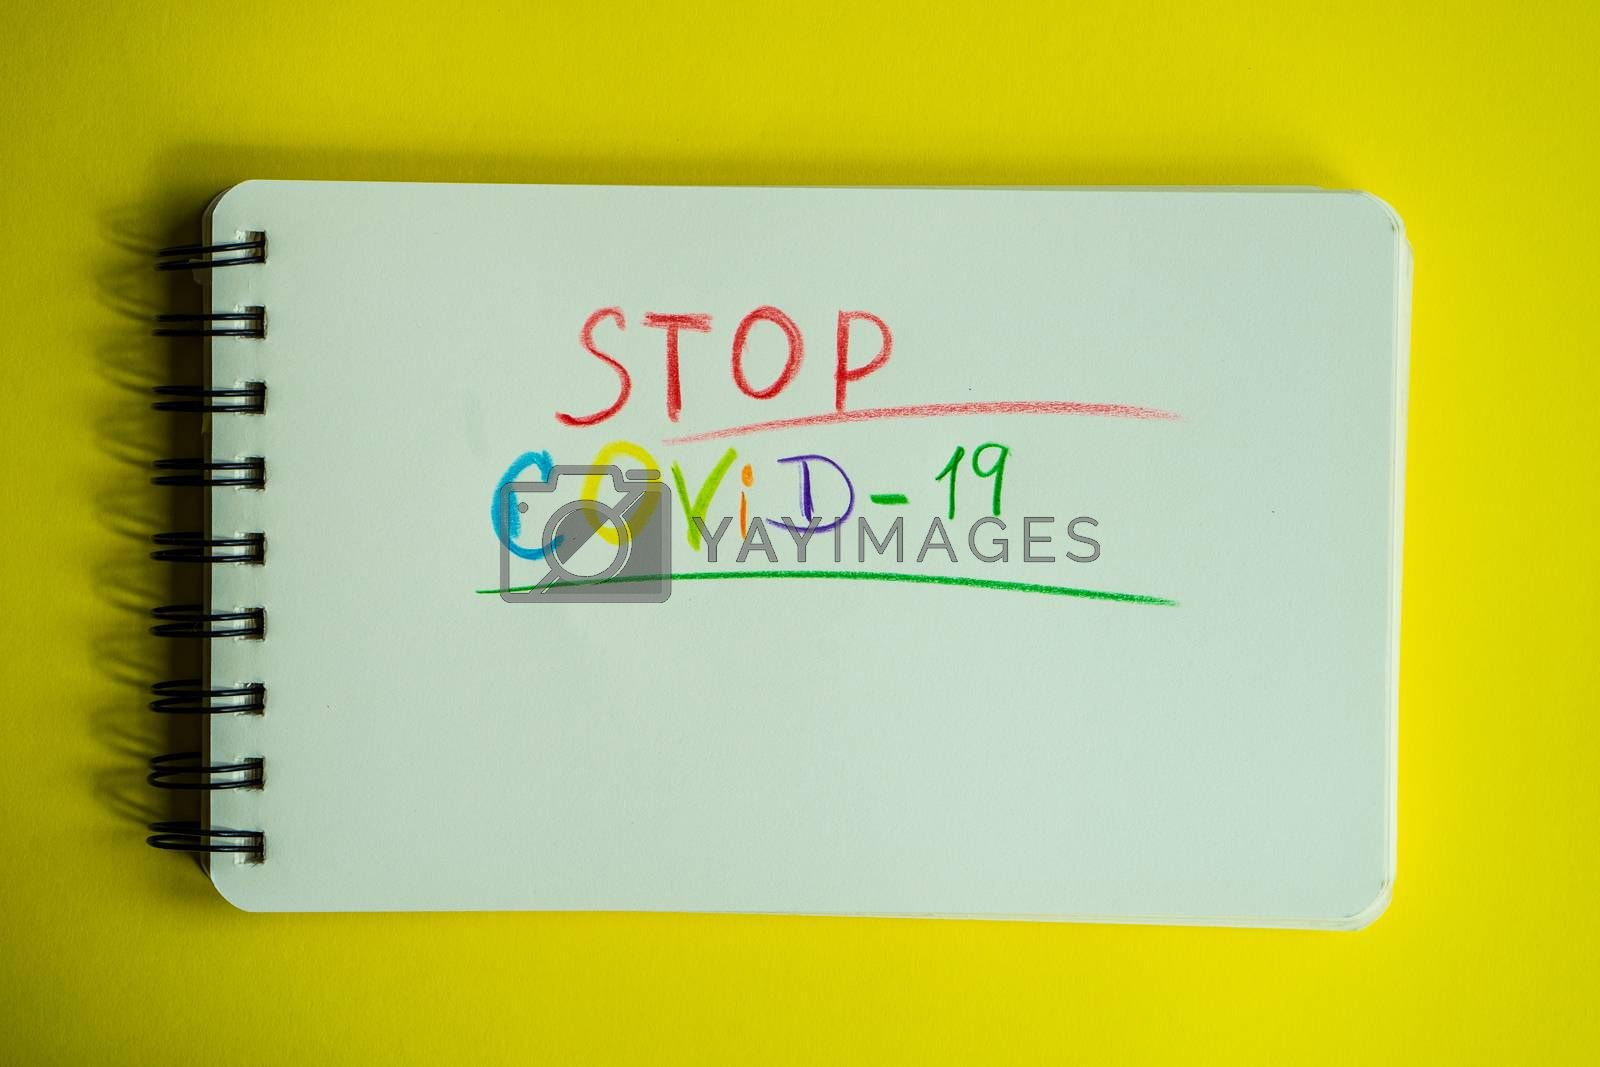 COVID-19 virus concept with note on pastel yellow background with copy space